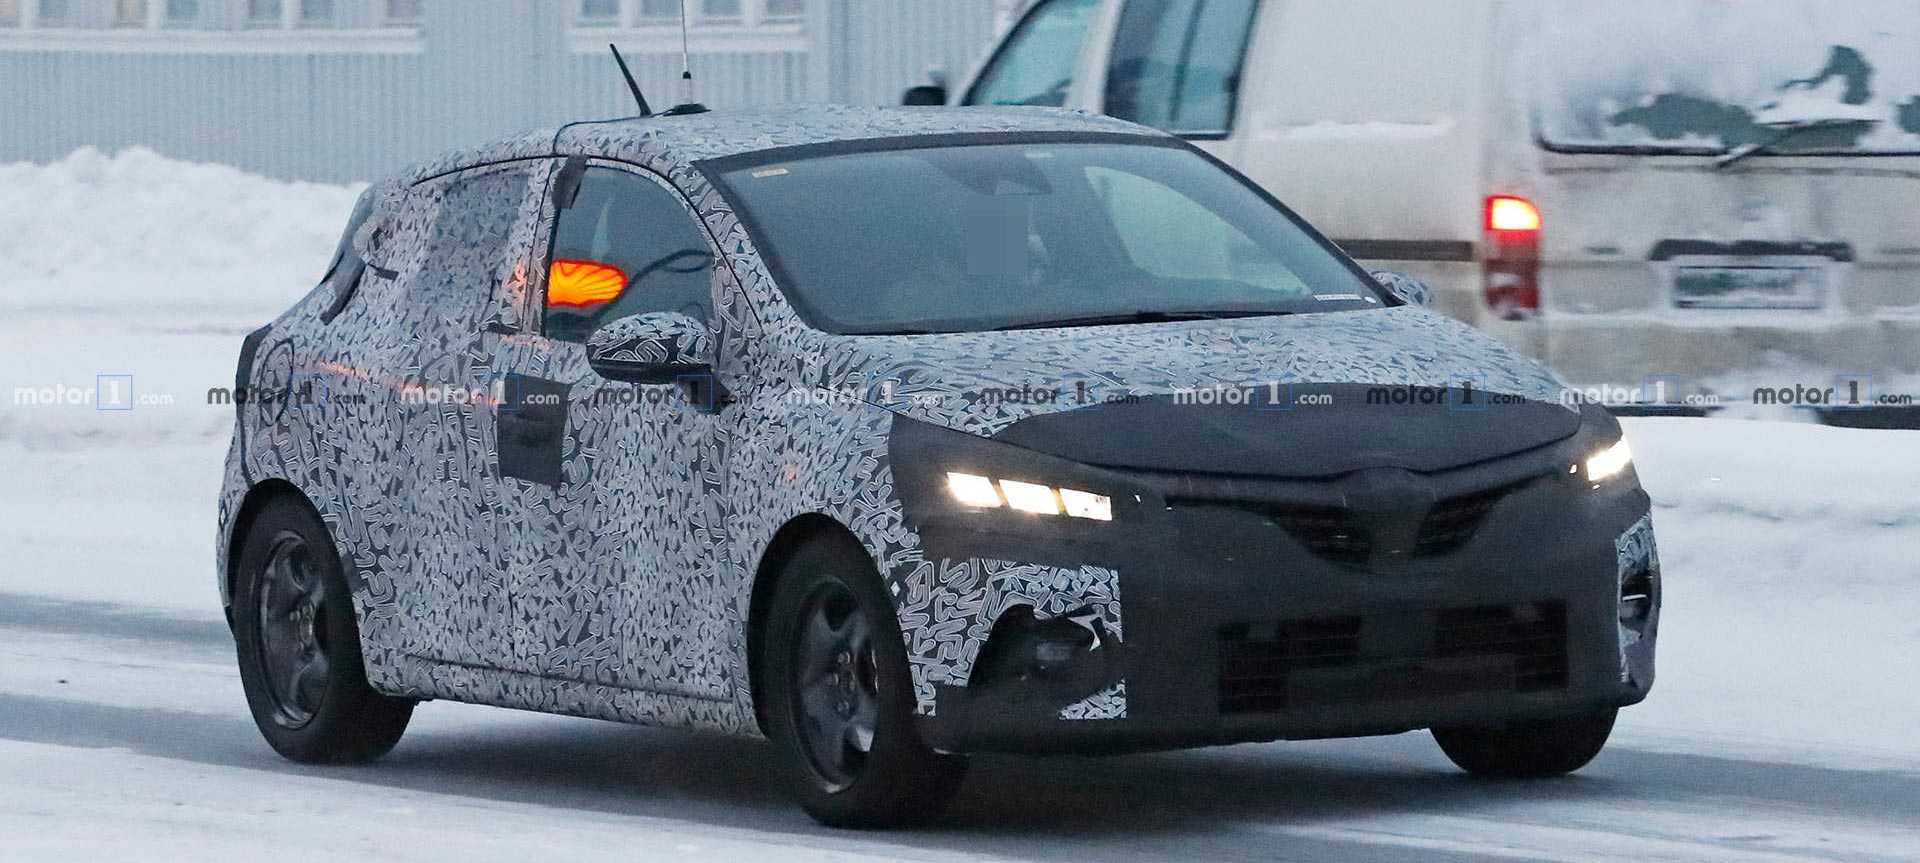 Renault Clio Spied In Revised Camo For Cold-Weather Testing